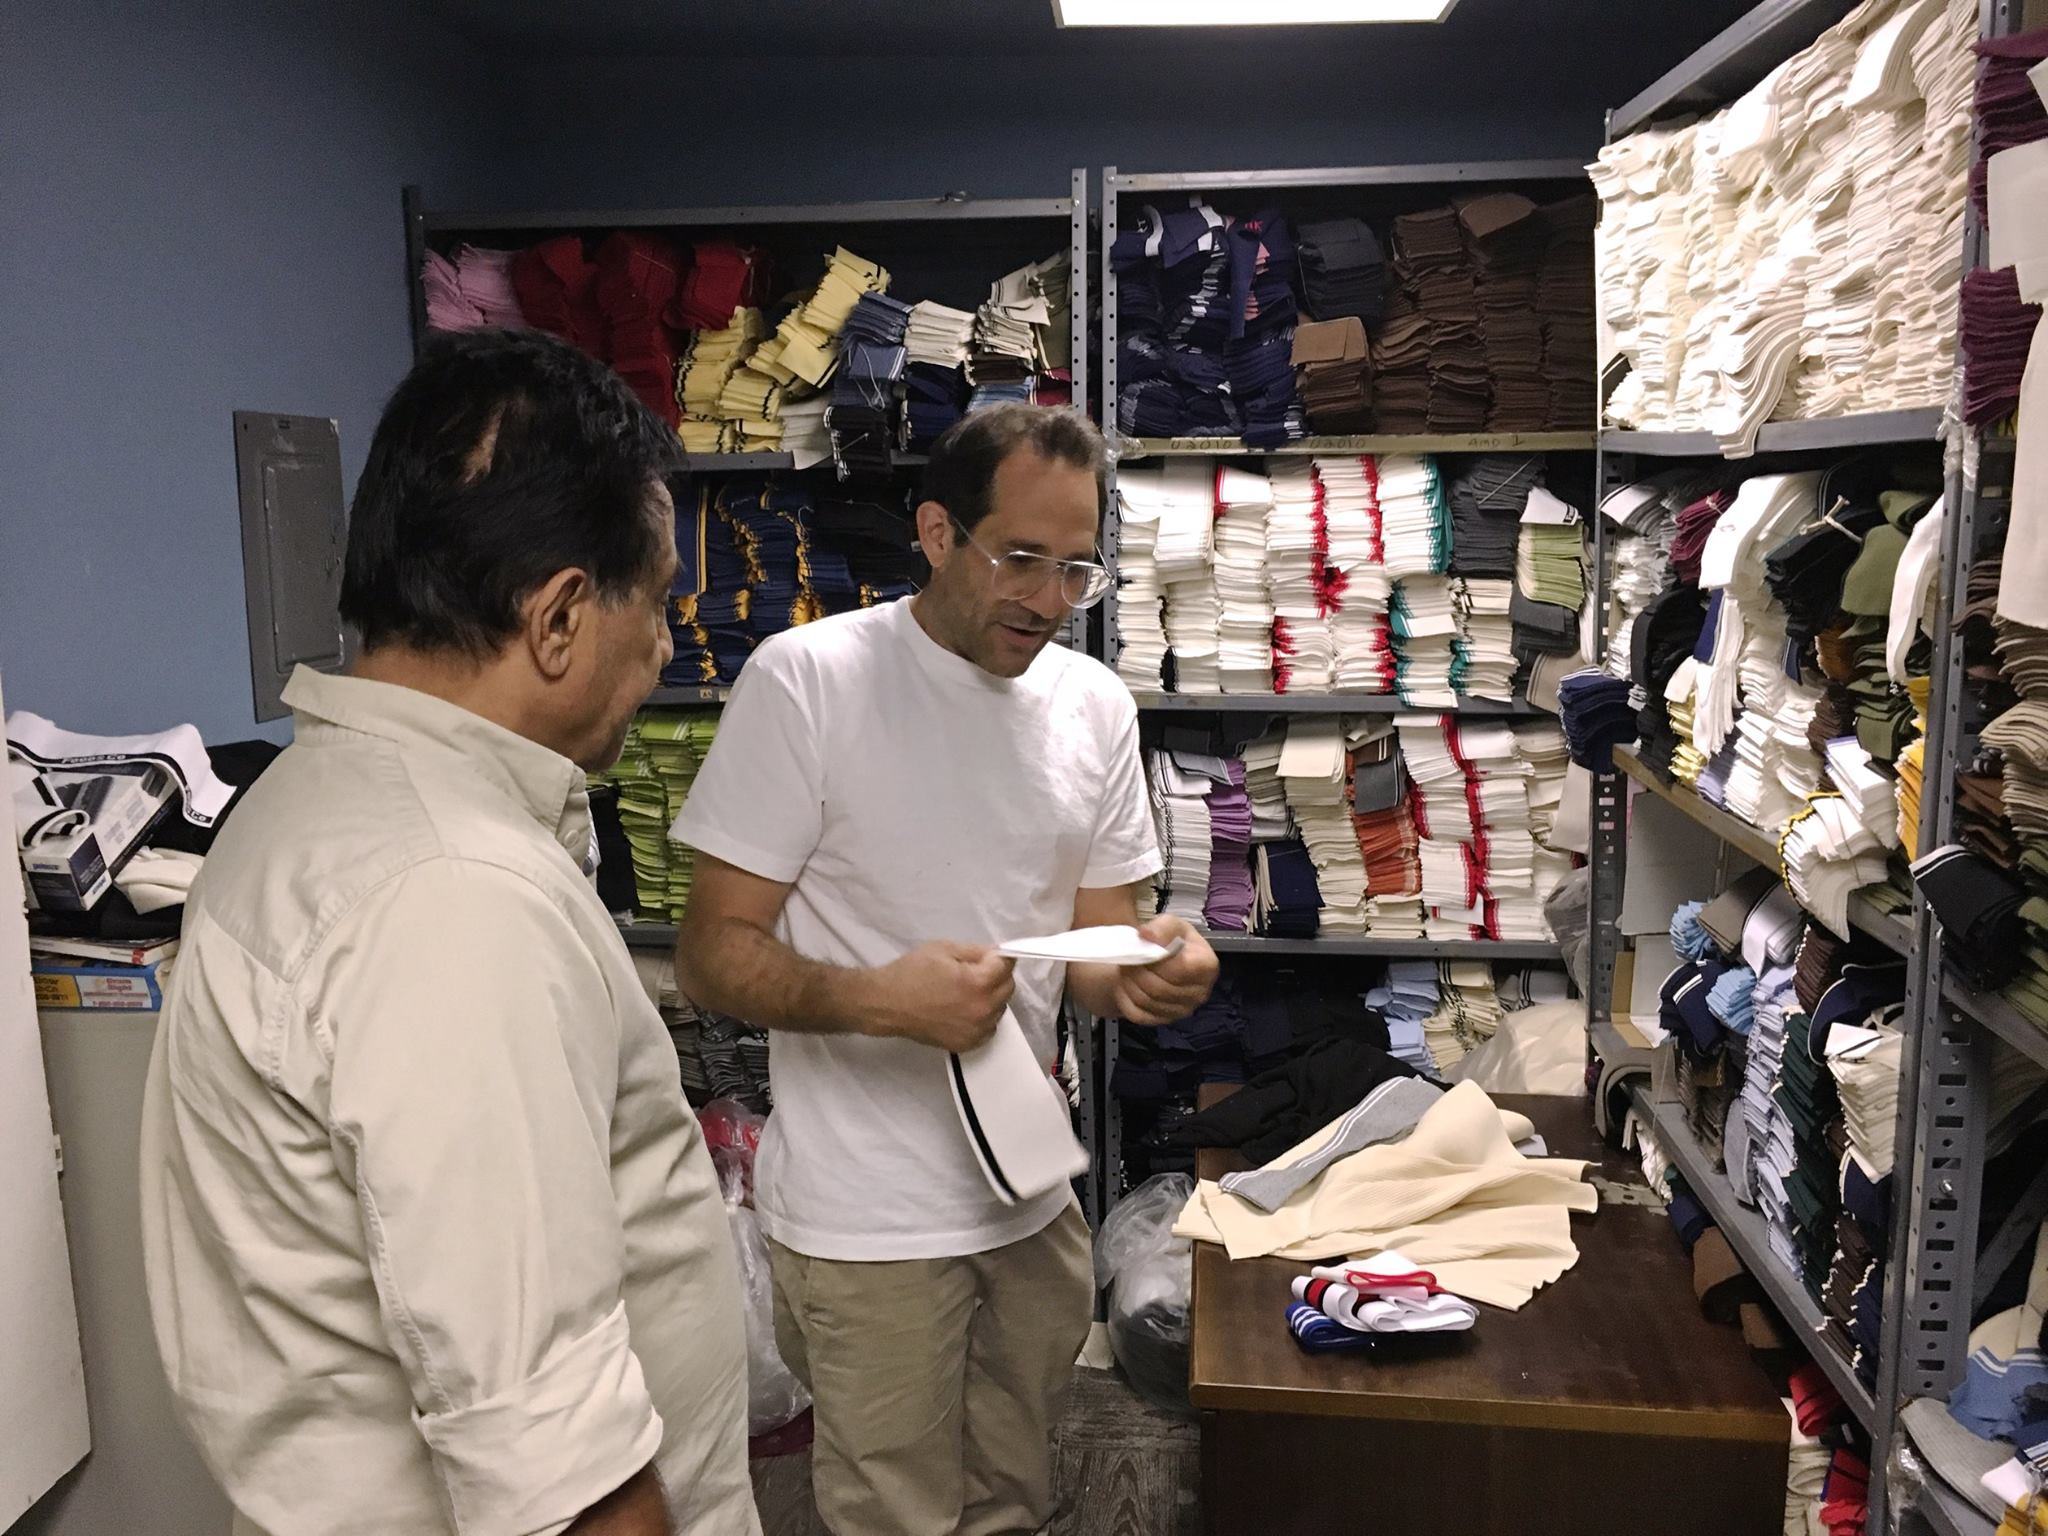 Dov Charney working with a knitter on Golf shirts in Downtown Los Angeles. The controversial founder and former CEO of American Apparel has founded another T-shirt company with some of his old colleagues.